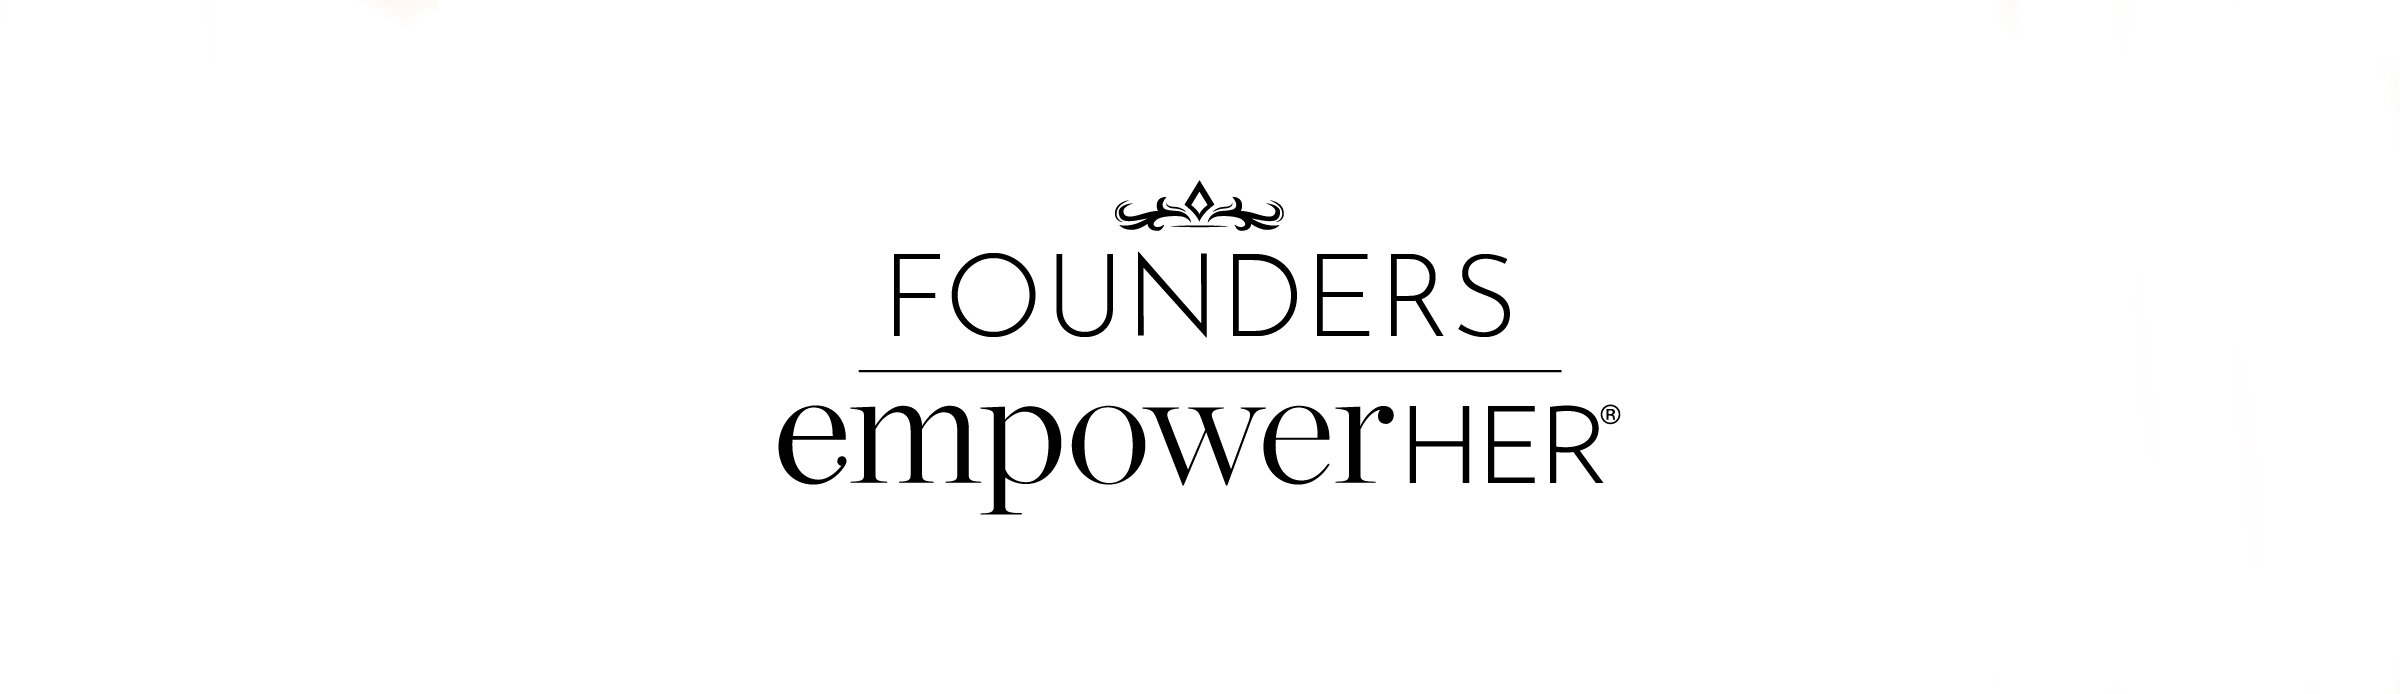 Founder-logo_New_Web.jpg